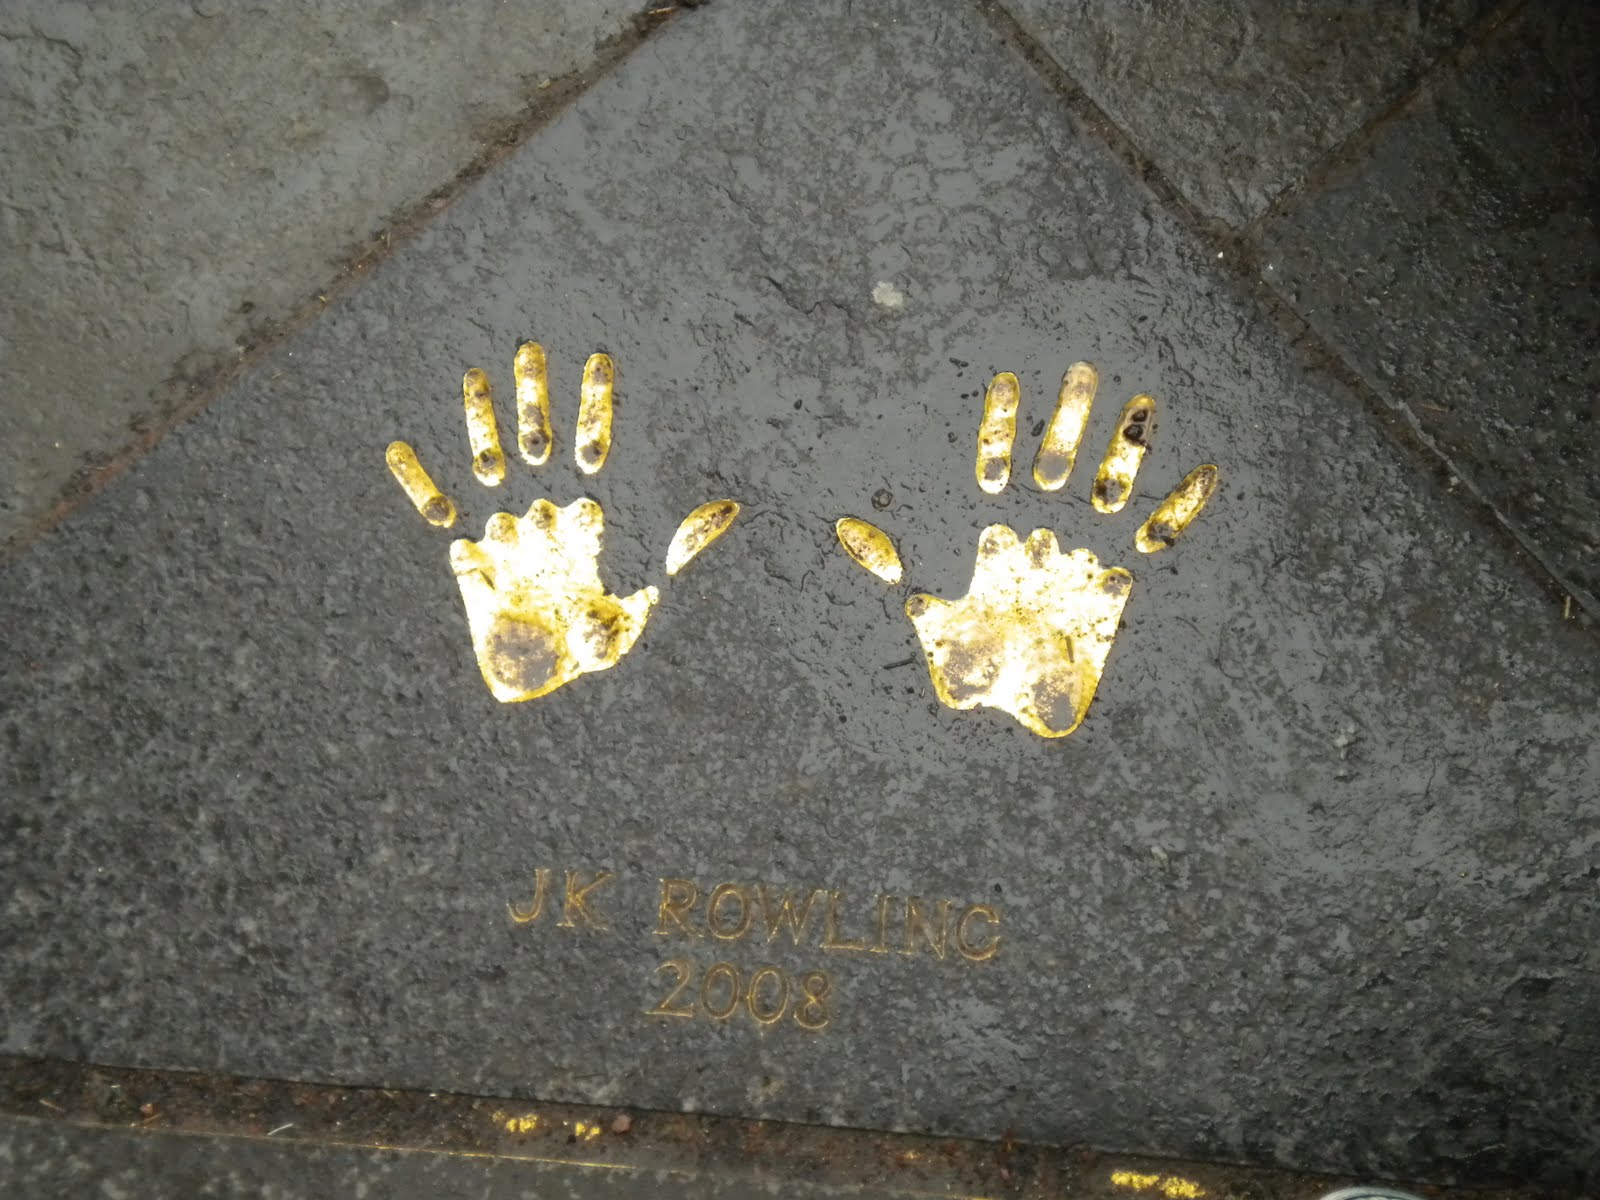 J.K. Rowling: the hands & handprints of the UK author! (Harry Potter) 115